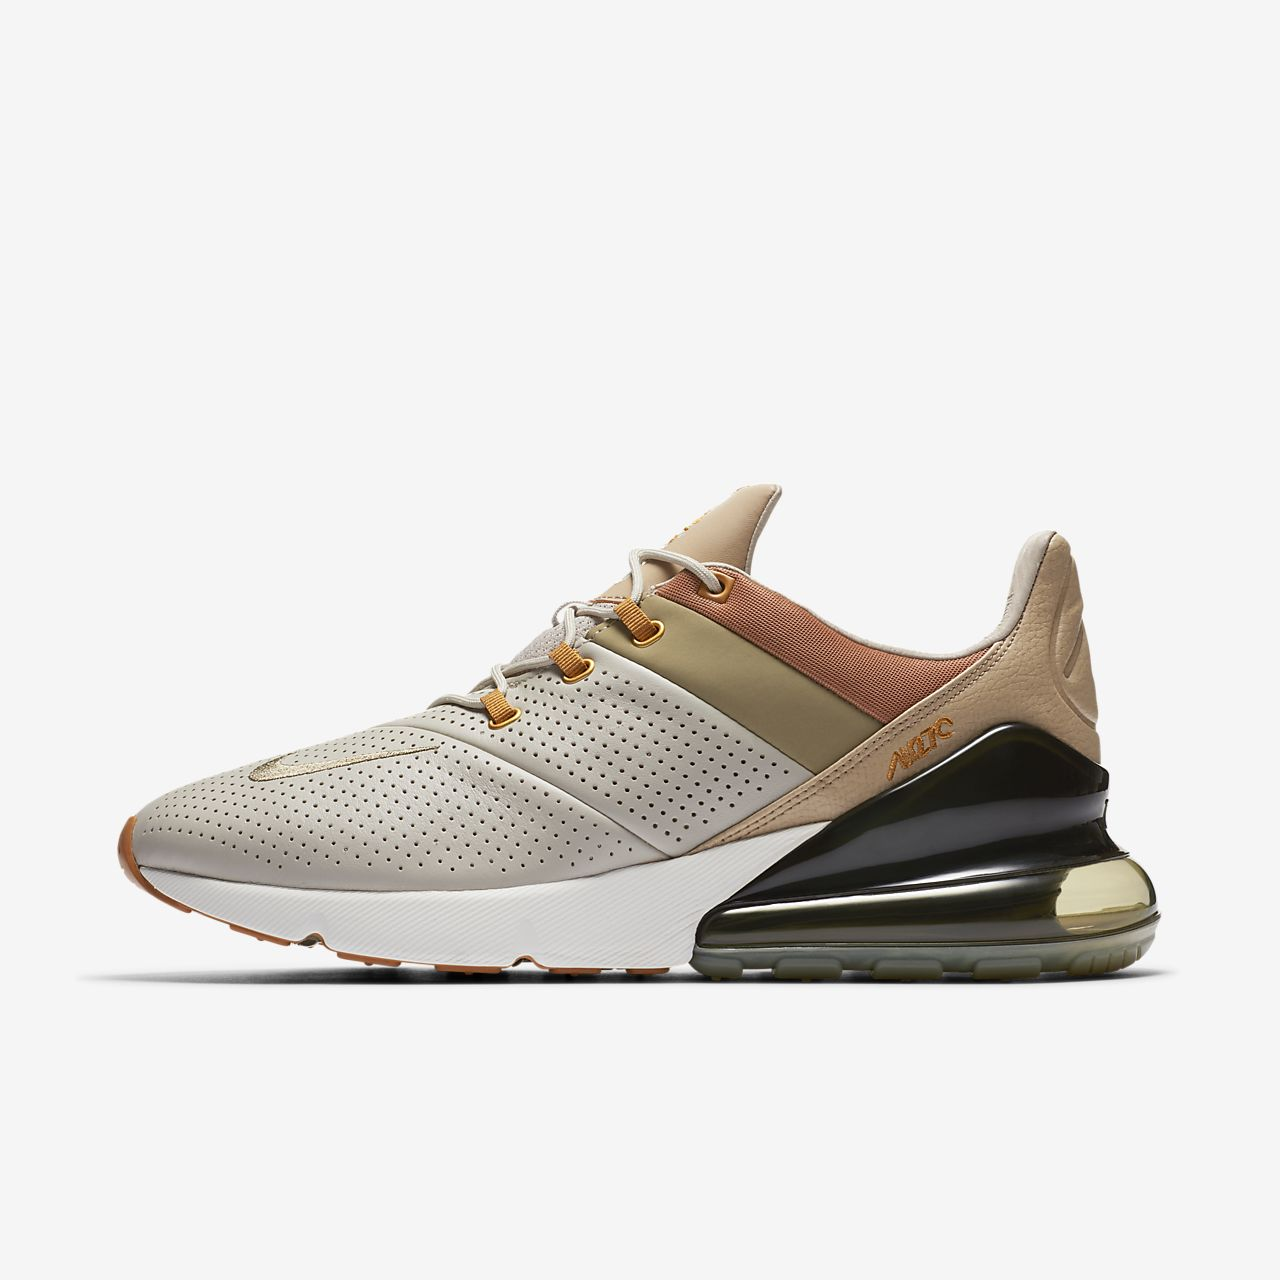 Nike Air Max 270 Premium Mens Shoe